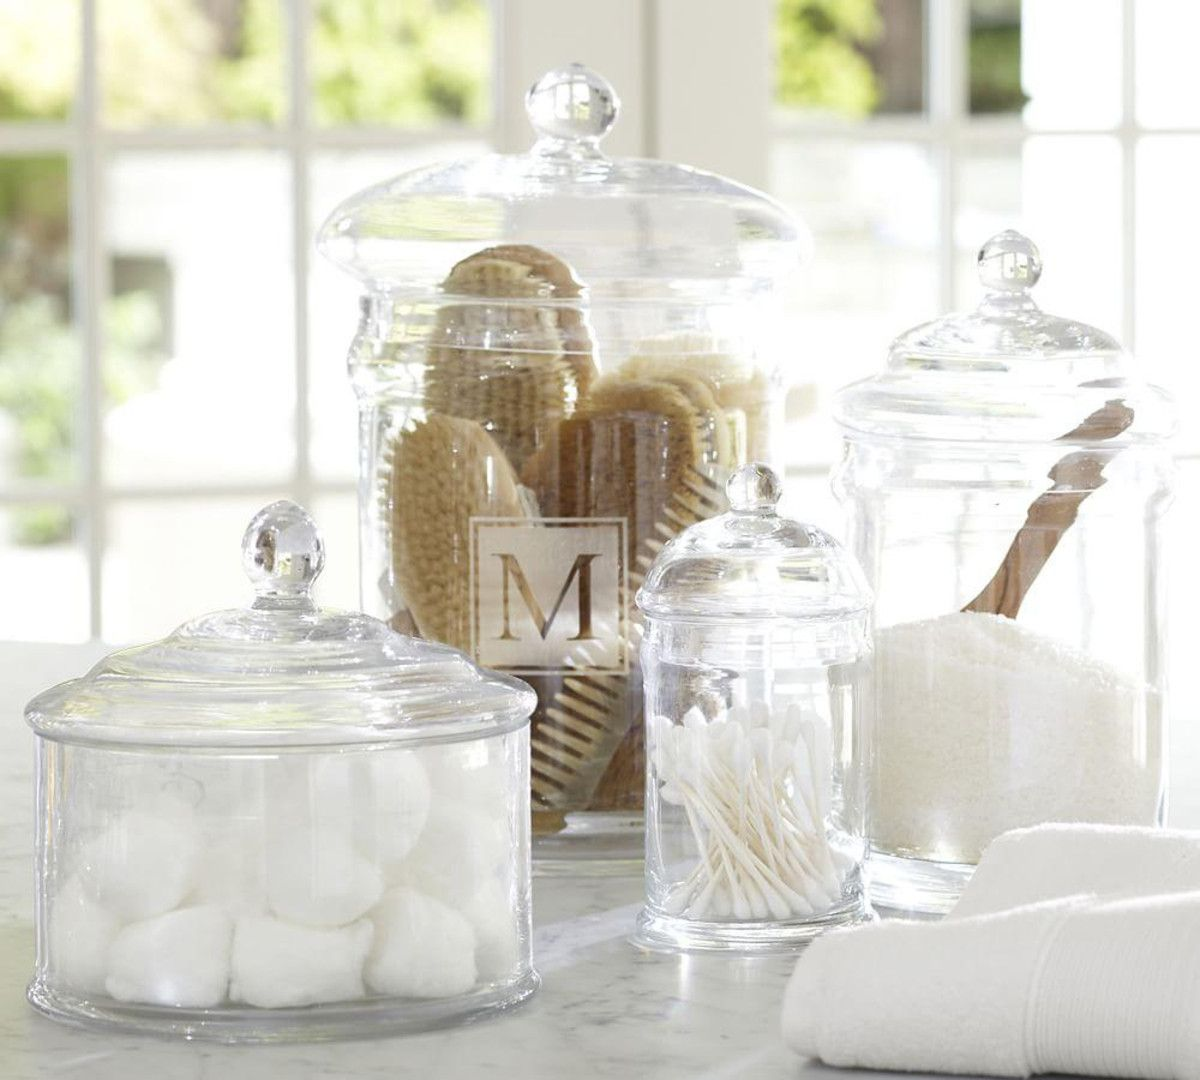 Bathroom Canisters Pb Classic Glass Canister Home Ish In 2019 Bathroom Canisters